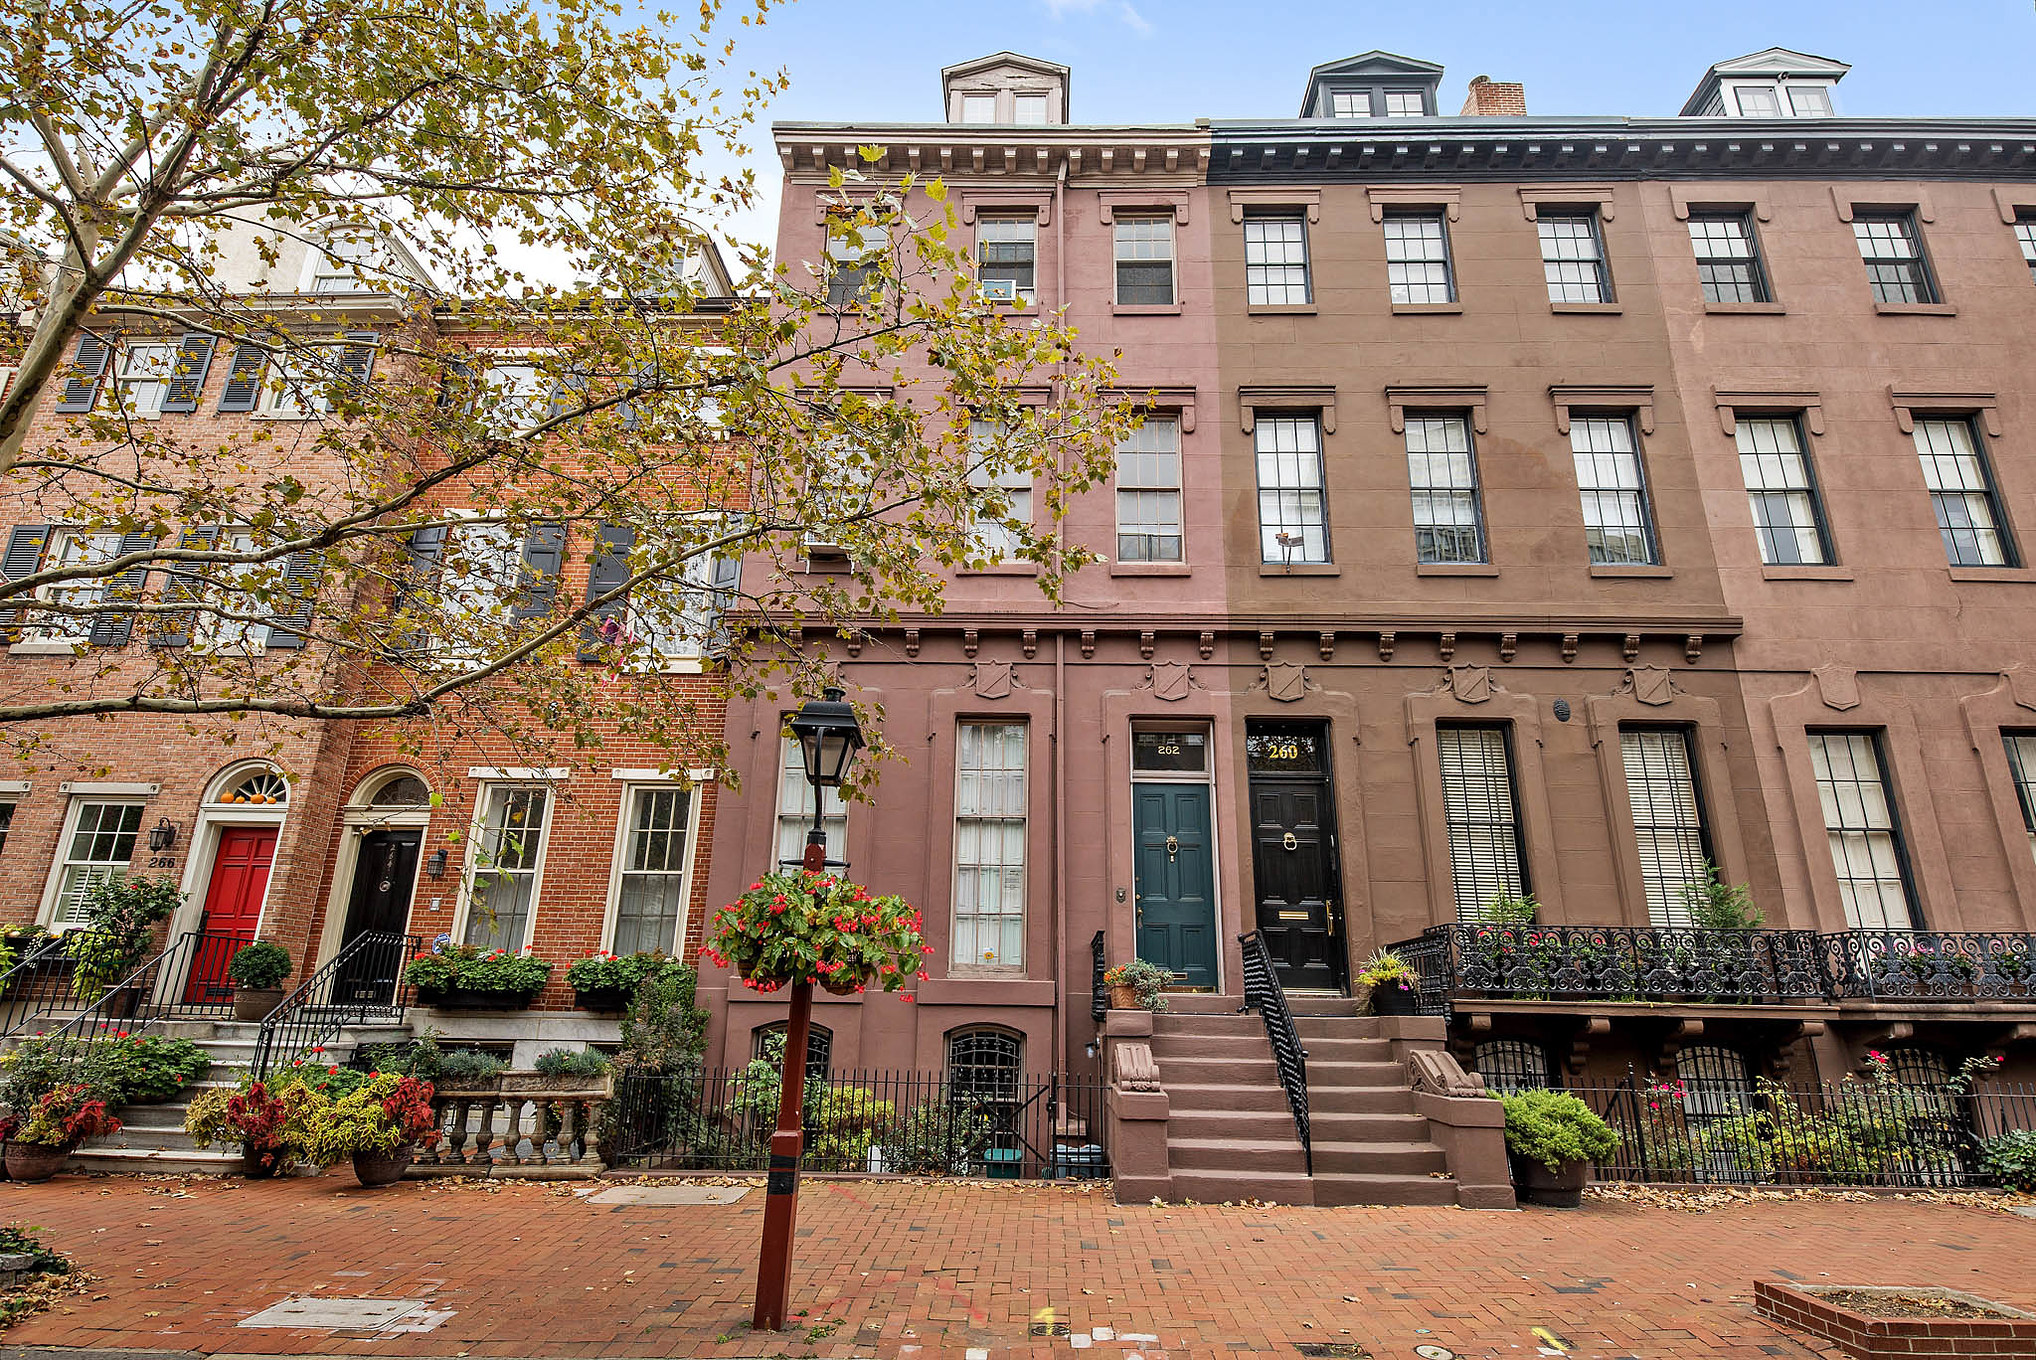 A series of rowhomes, including three tall brownstones in Philly's Society Hill neighborhood.